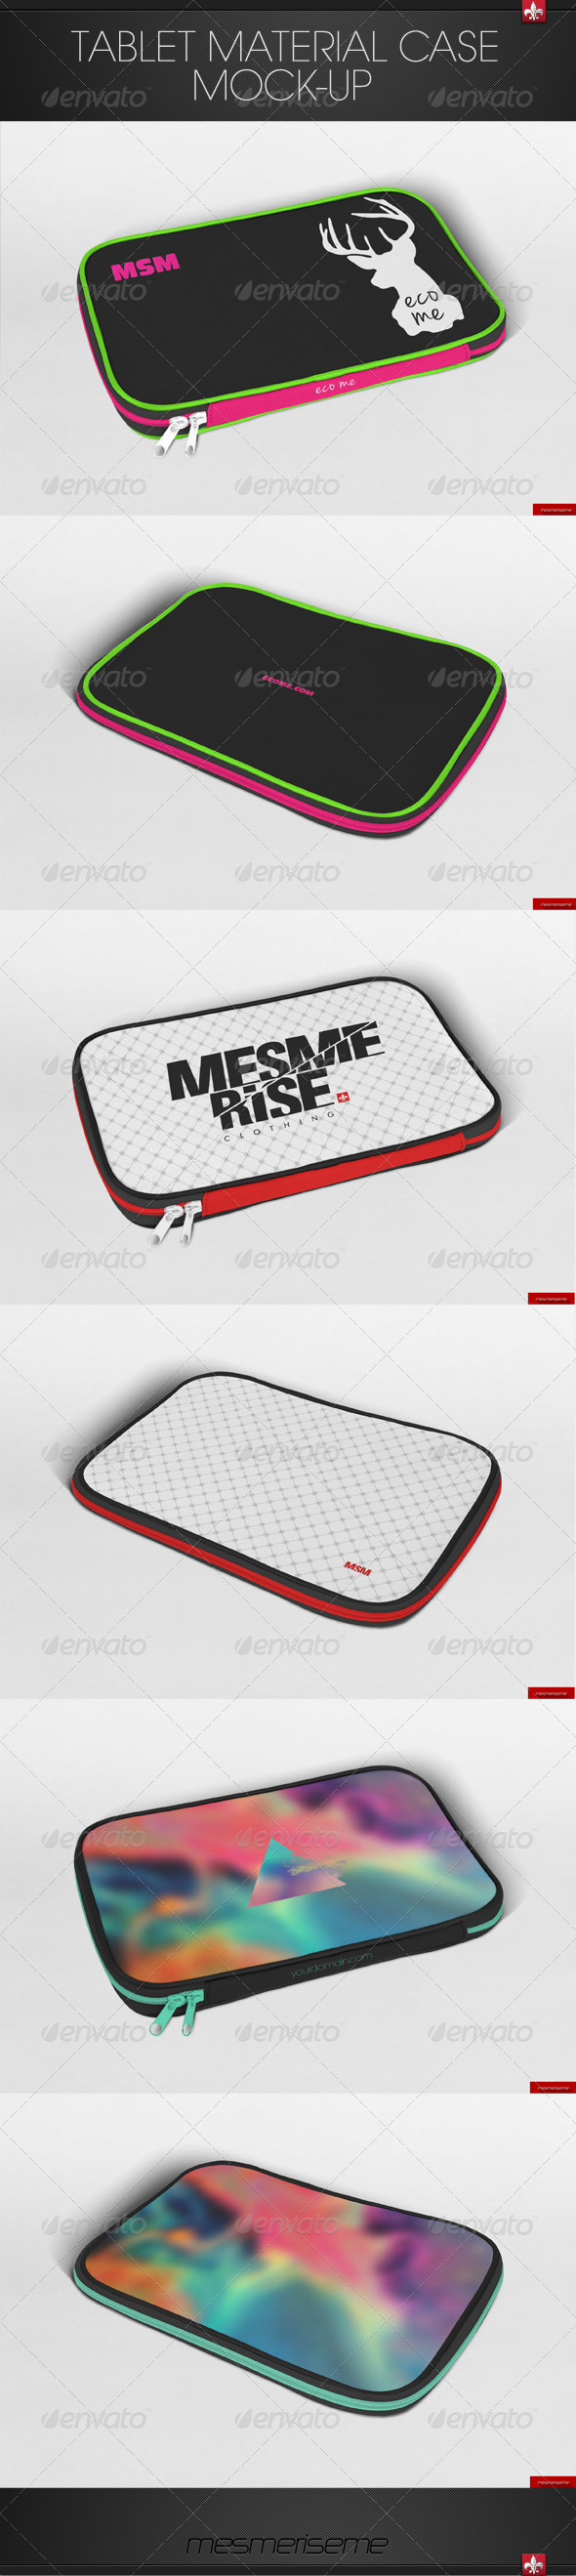 Tablet Material Case Mock-up